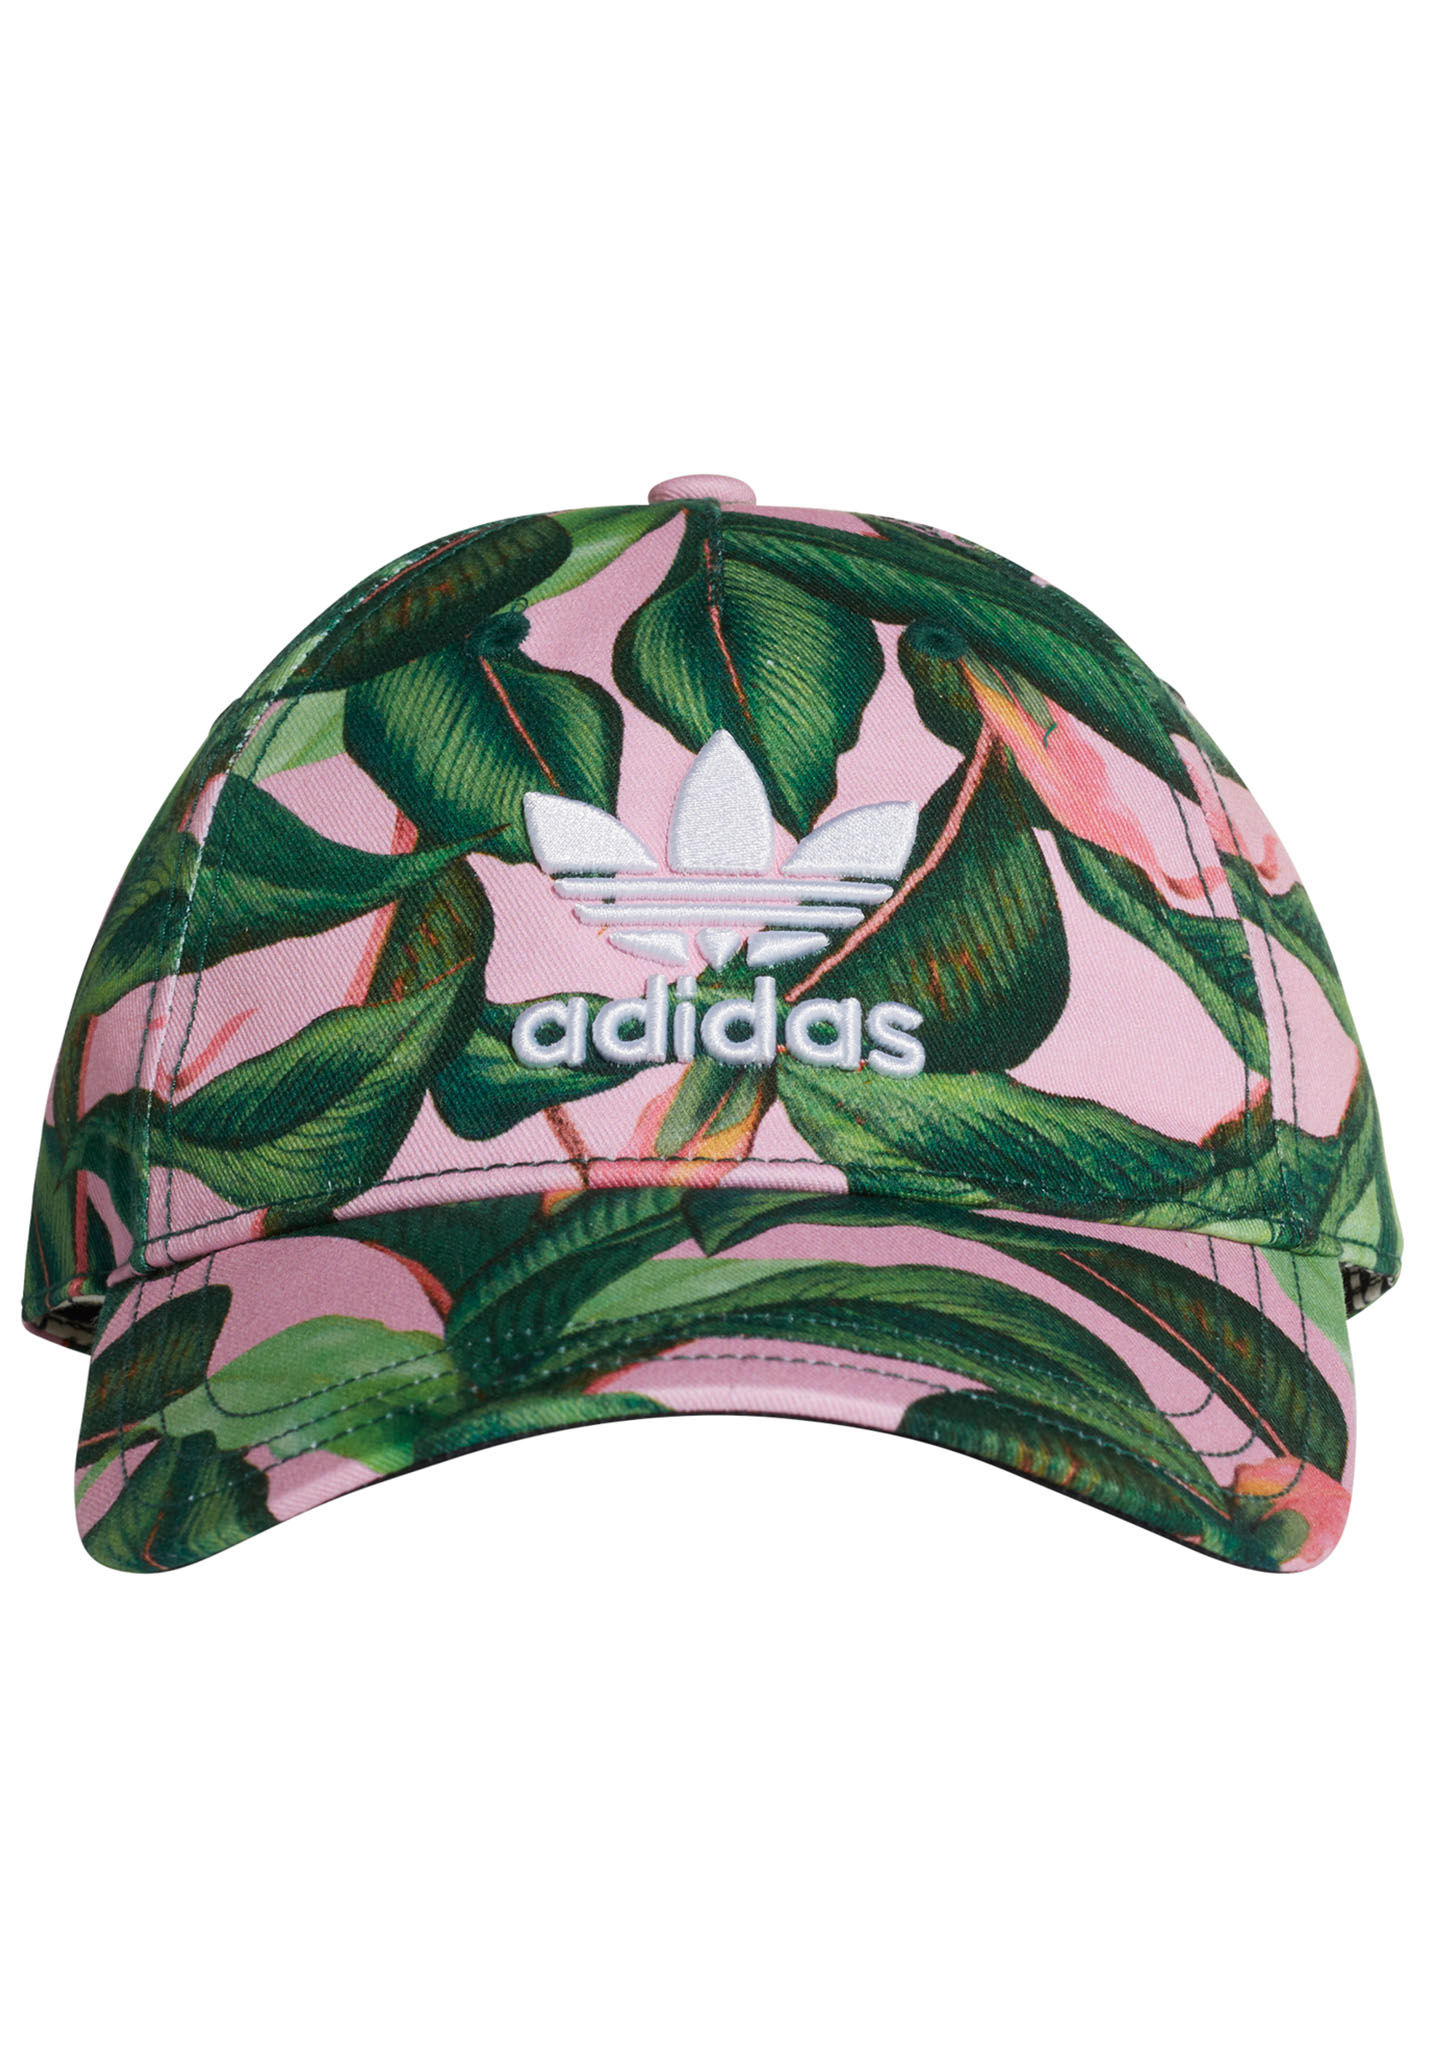 60a34e23d896a ADIDAS ORIGINALS Baseball - Strapback Cap for Women - Multicolor - Planet  Sports